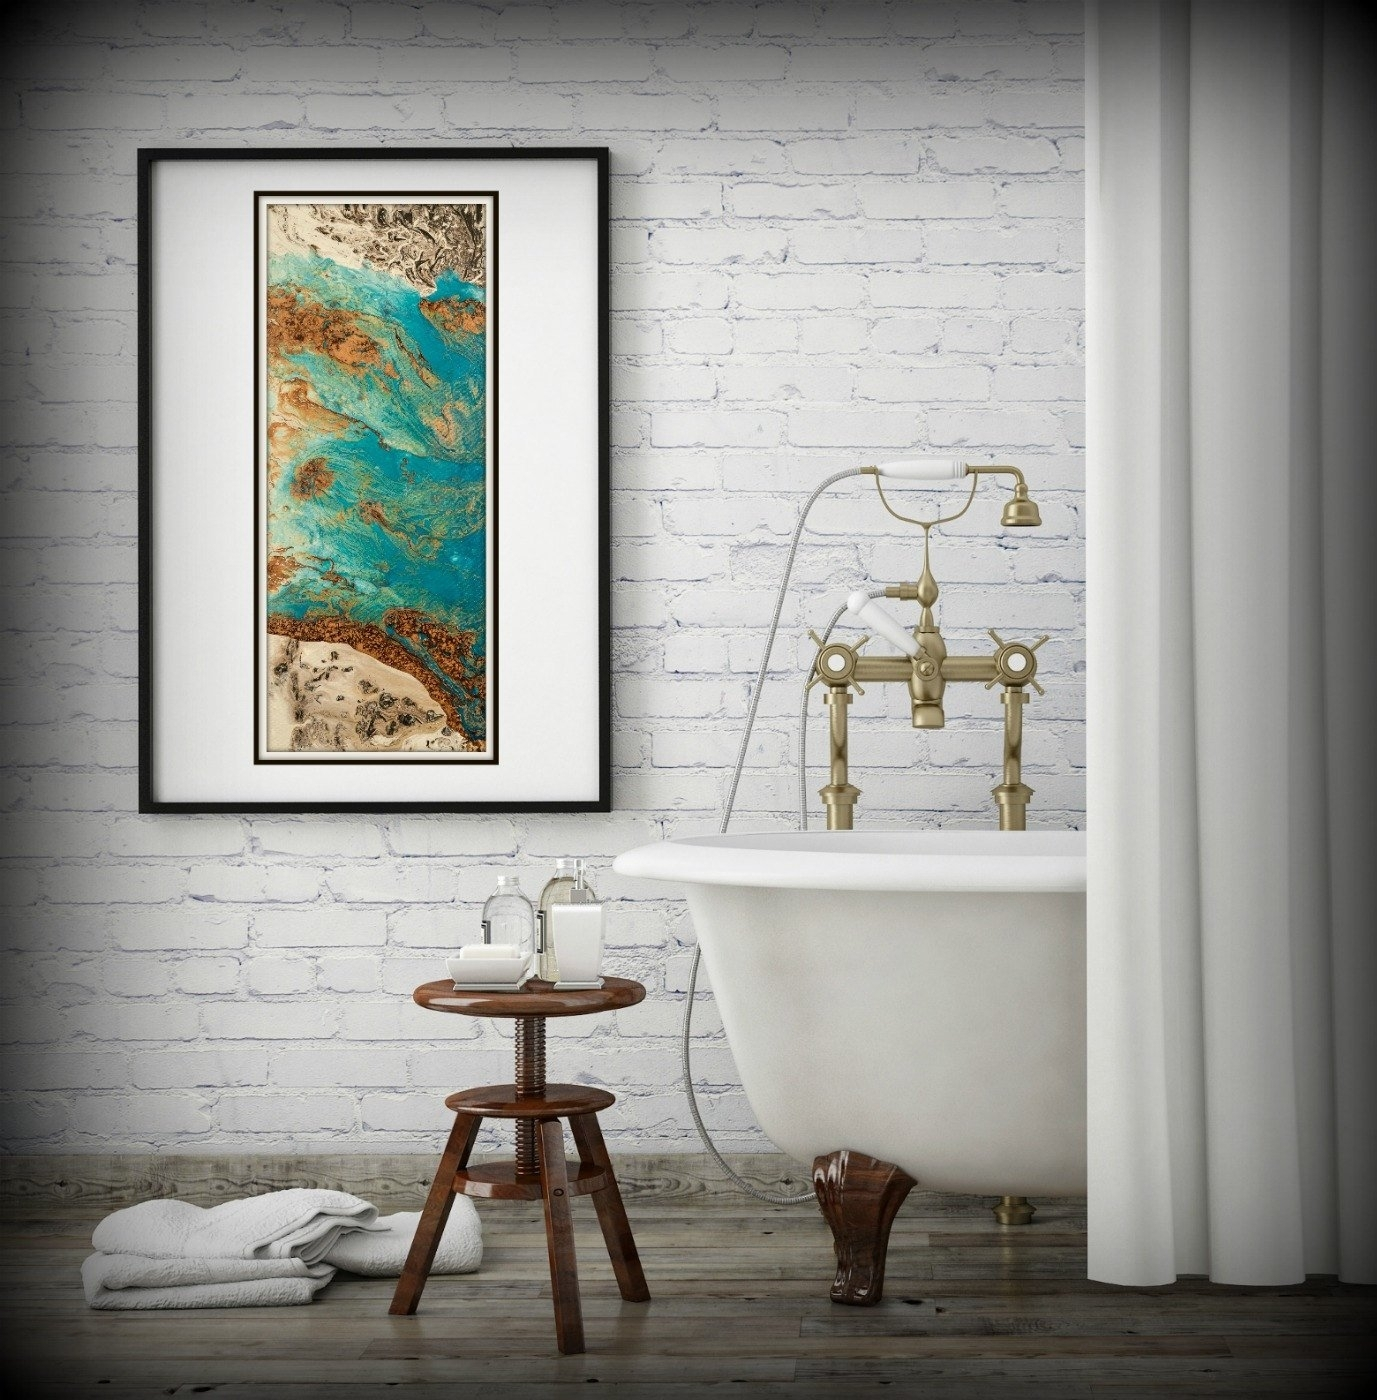 Blue And Copper Art, Vertical Wall Art Prints Fine Art Prints Regarding Most Recent Vertical Wall Art (View 7 of 20)